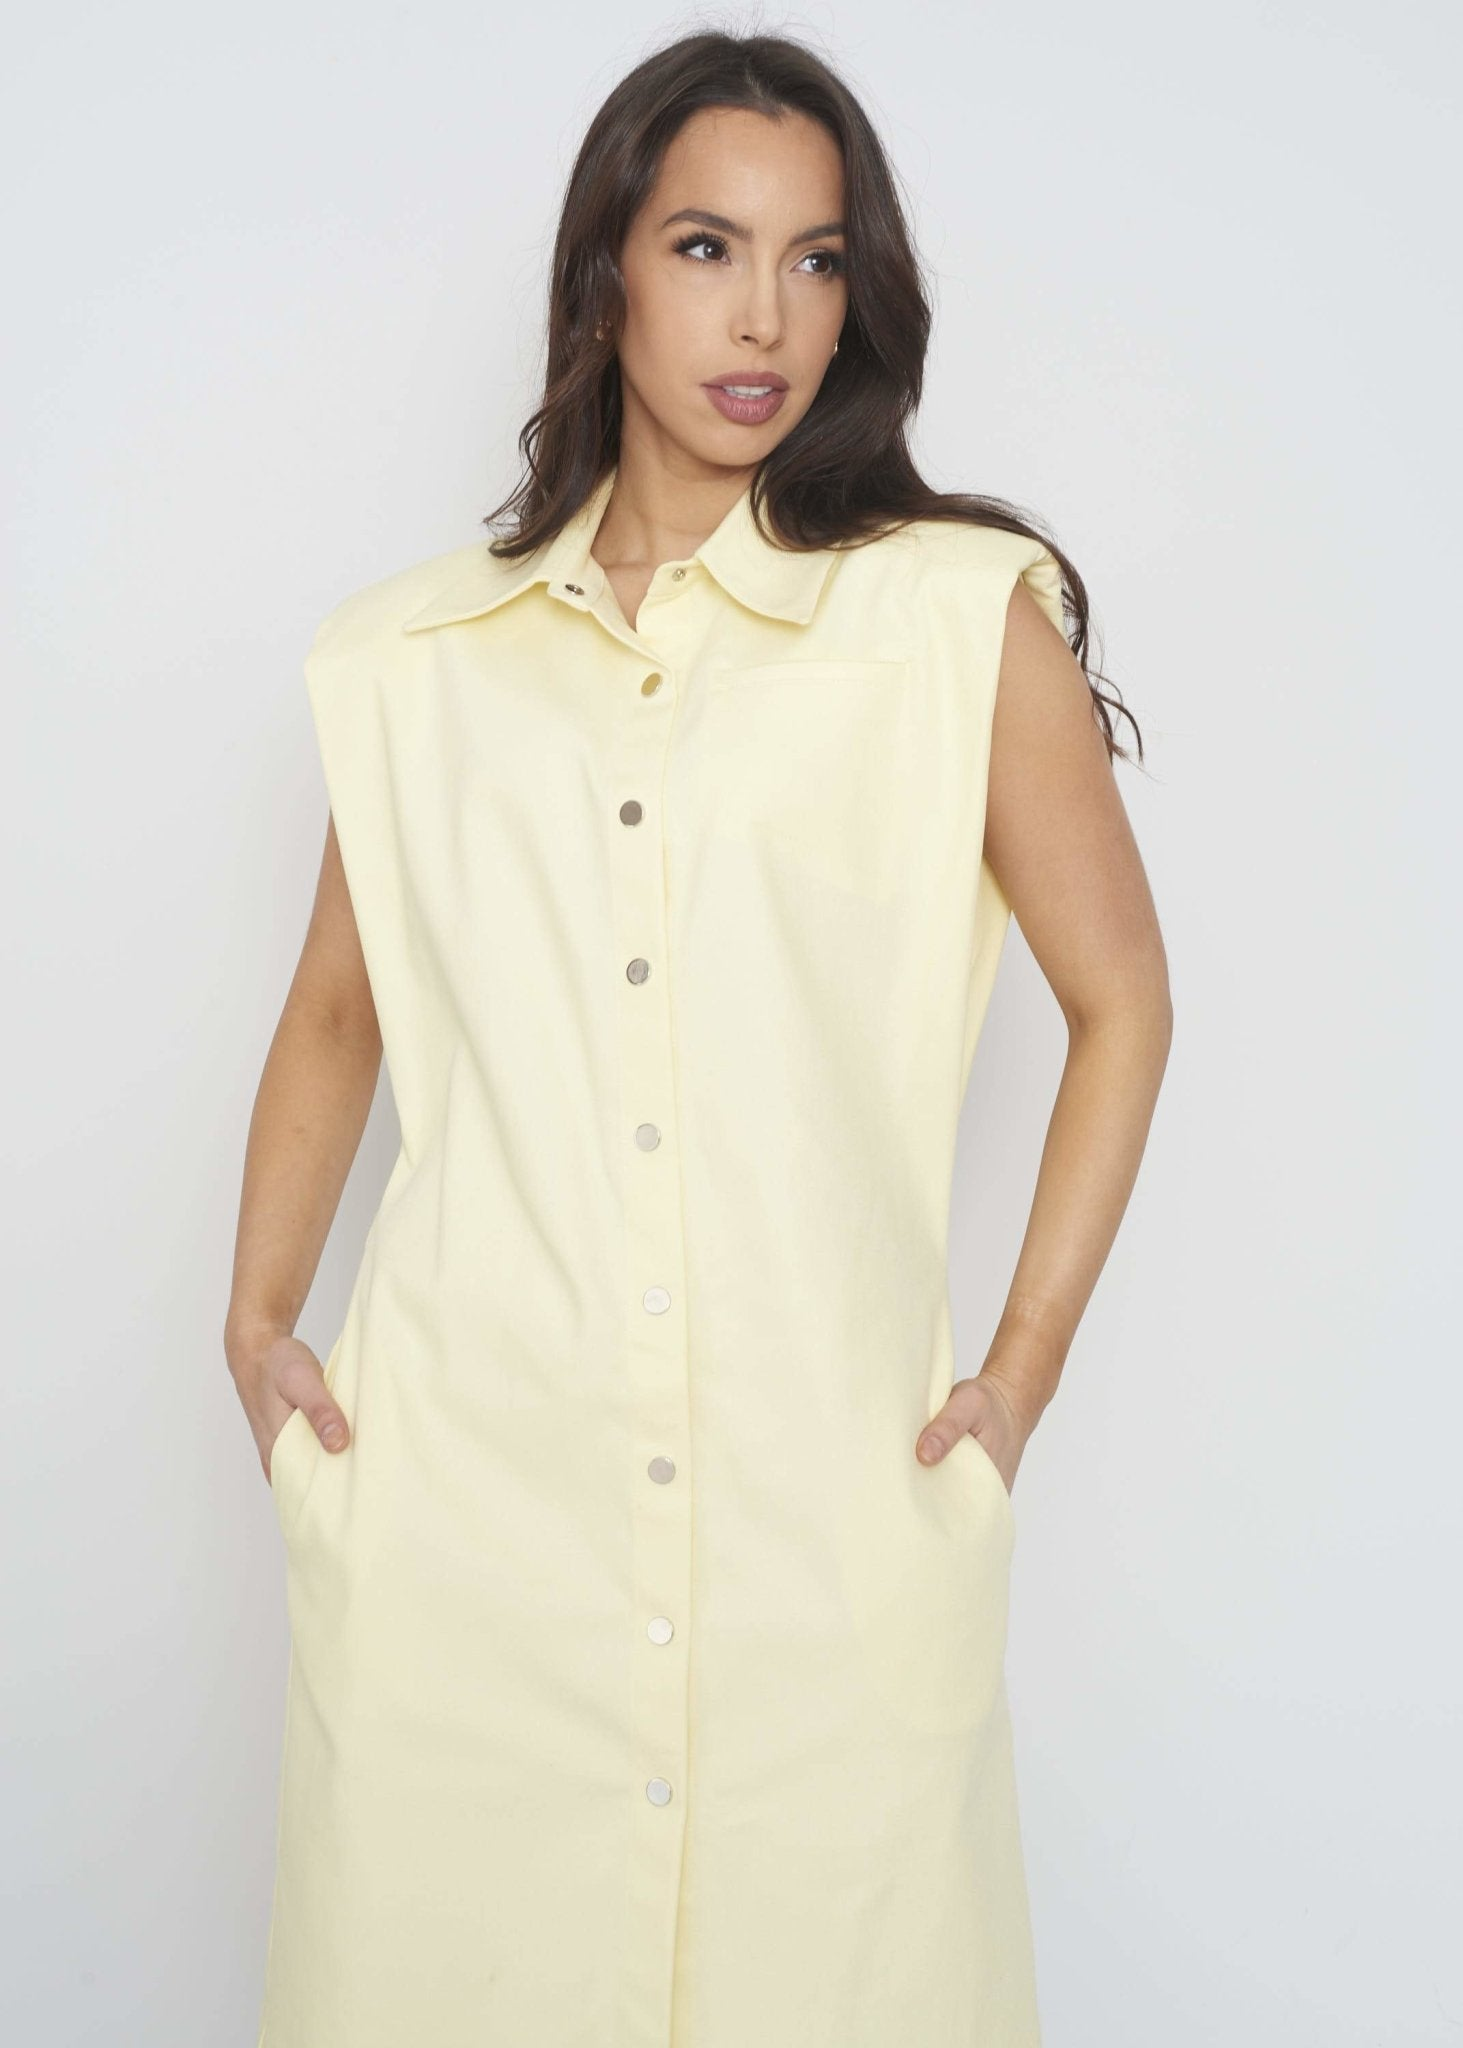 Savannah Denim Dress In Lemon - The Walk in Wardrobe